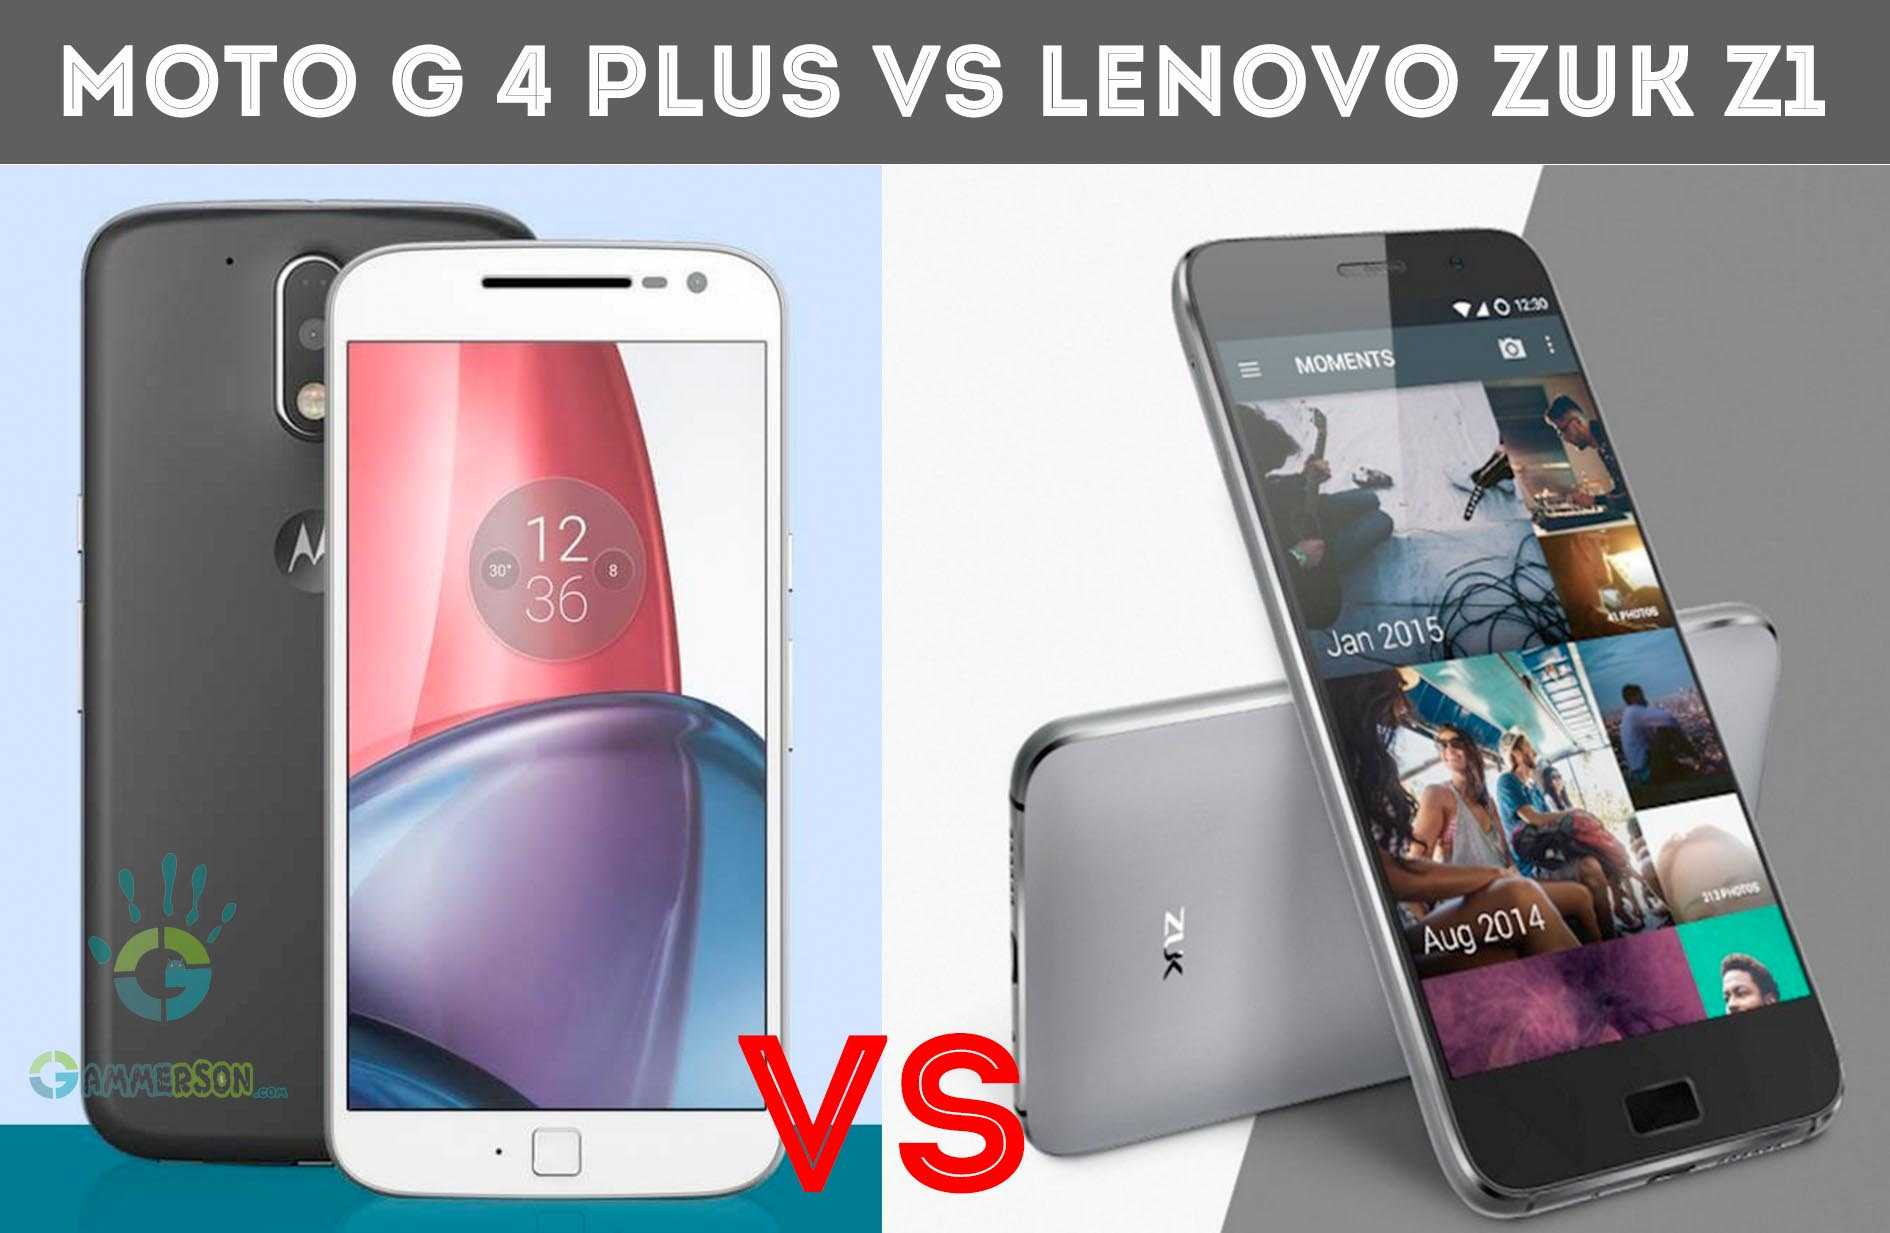 Moto G 4 plus vs Lenovo Zuk Z1